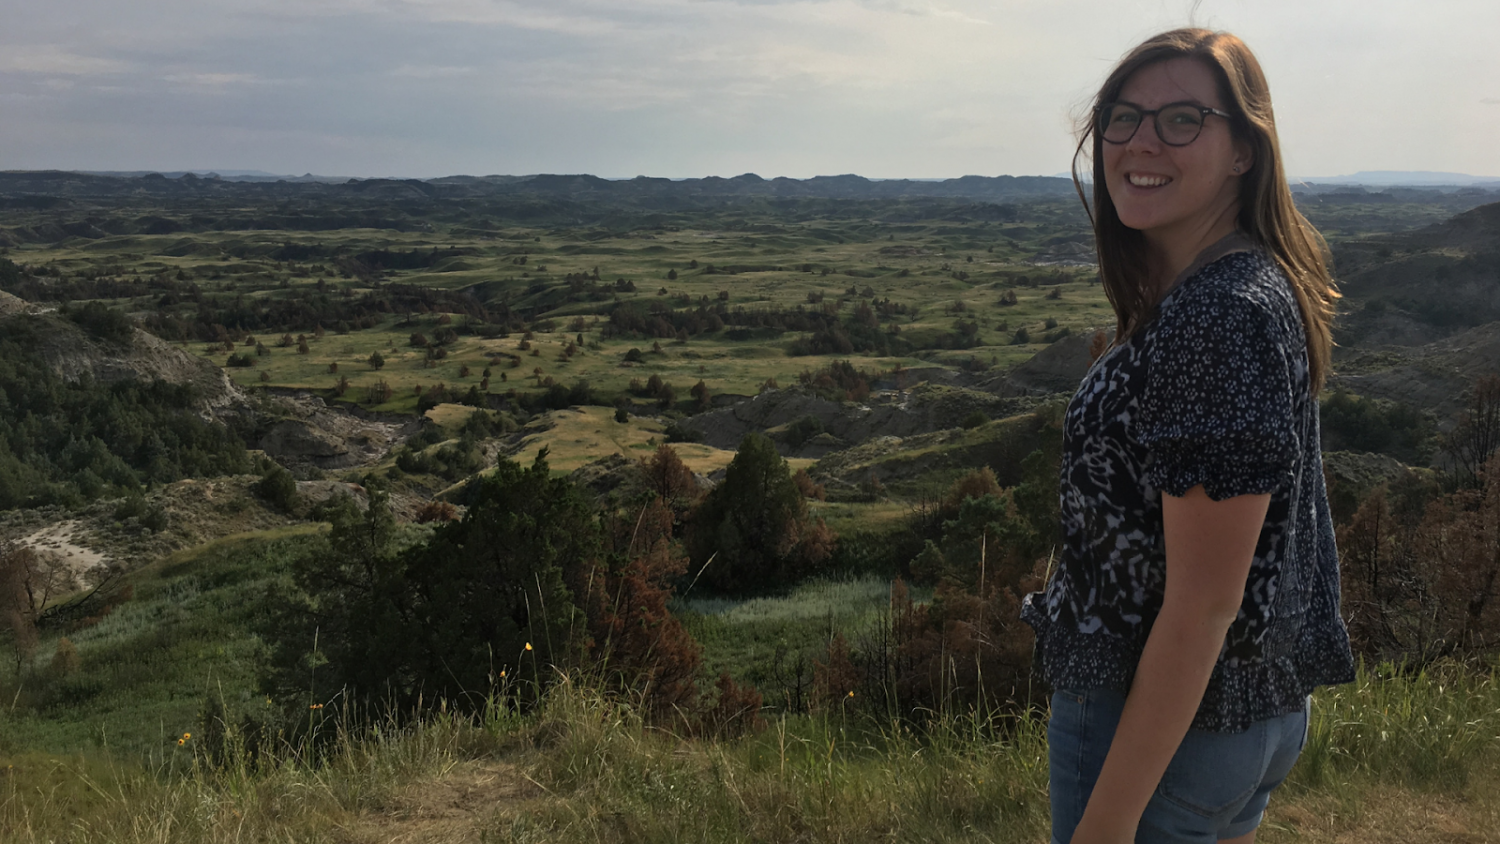 Jessica at Theodore Roosevelt National Park in North Dakota.